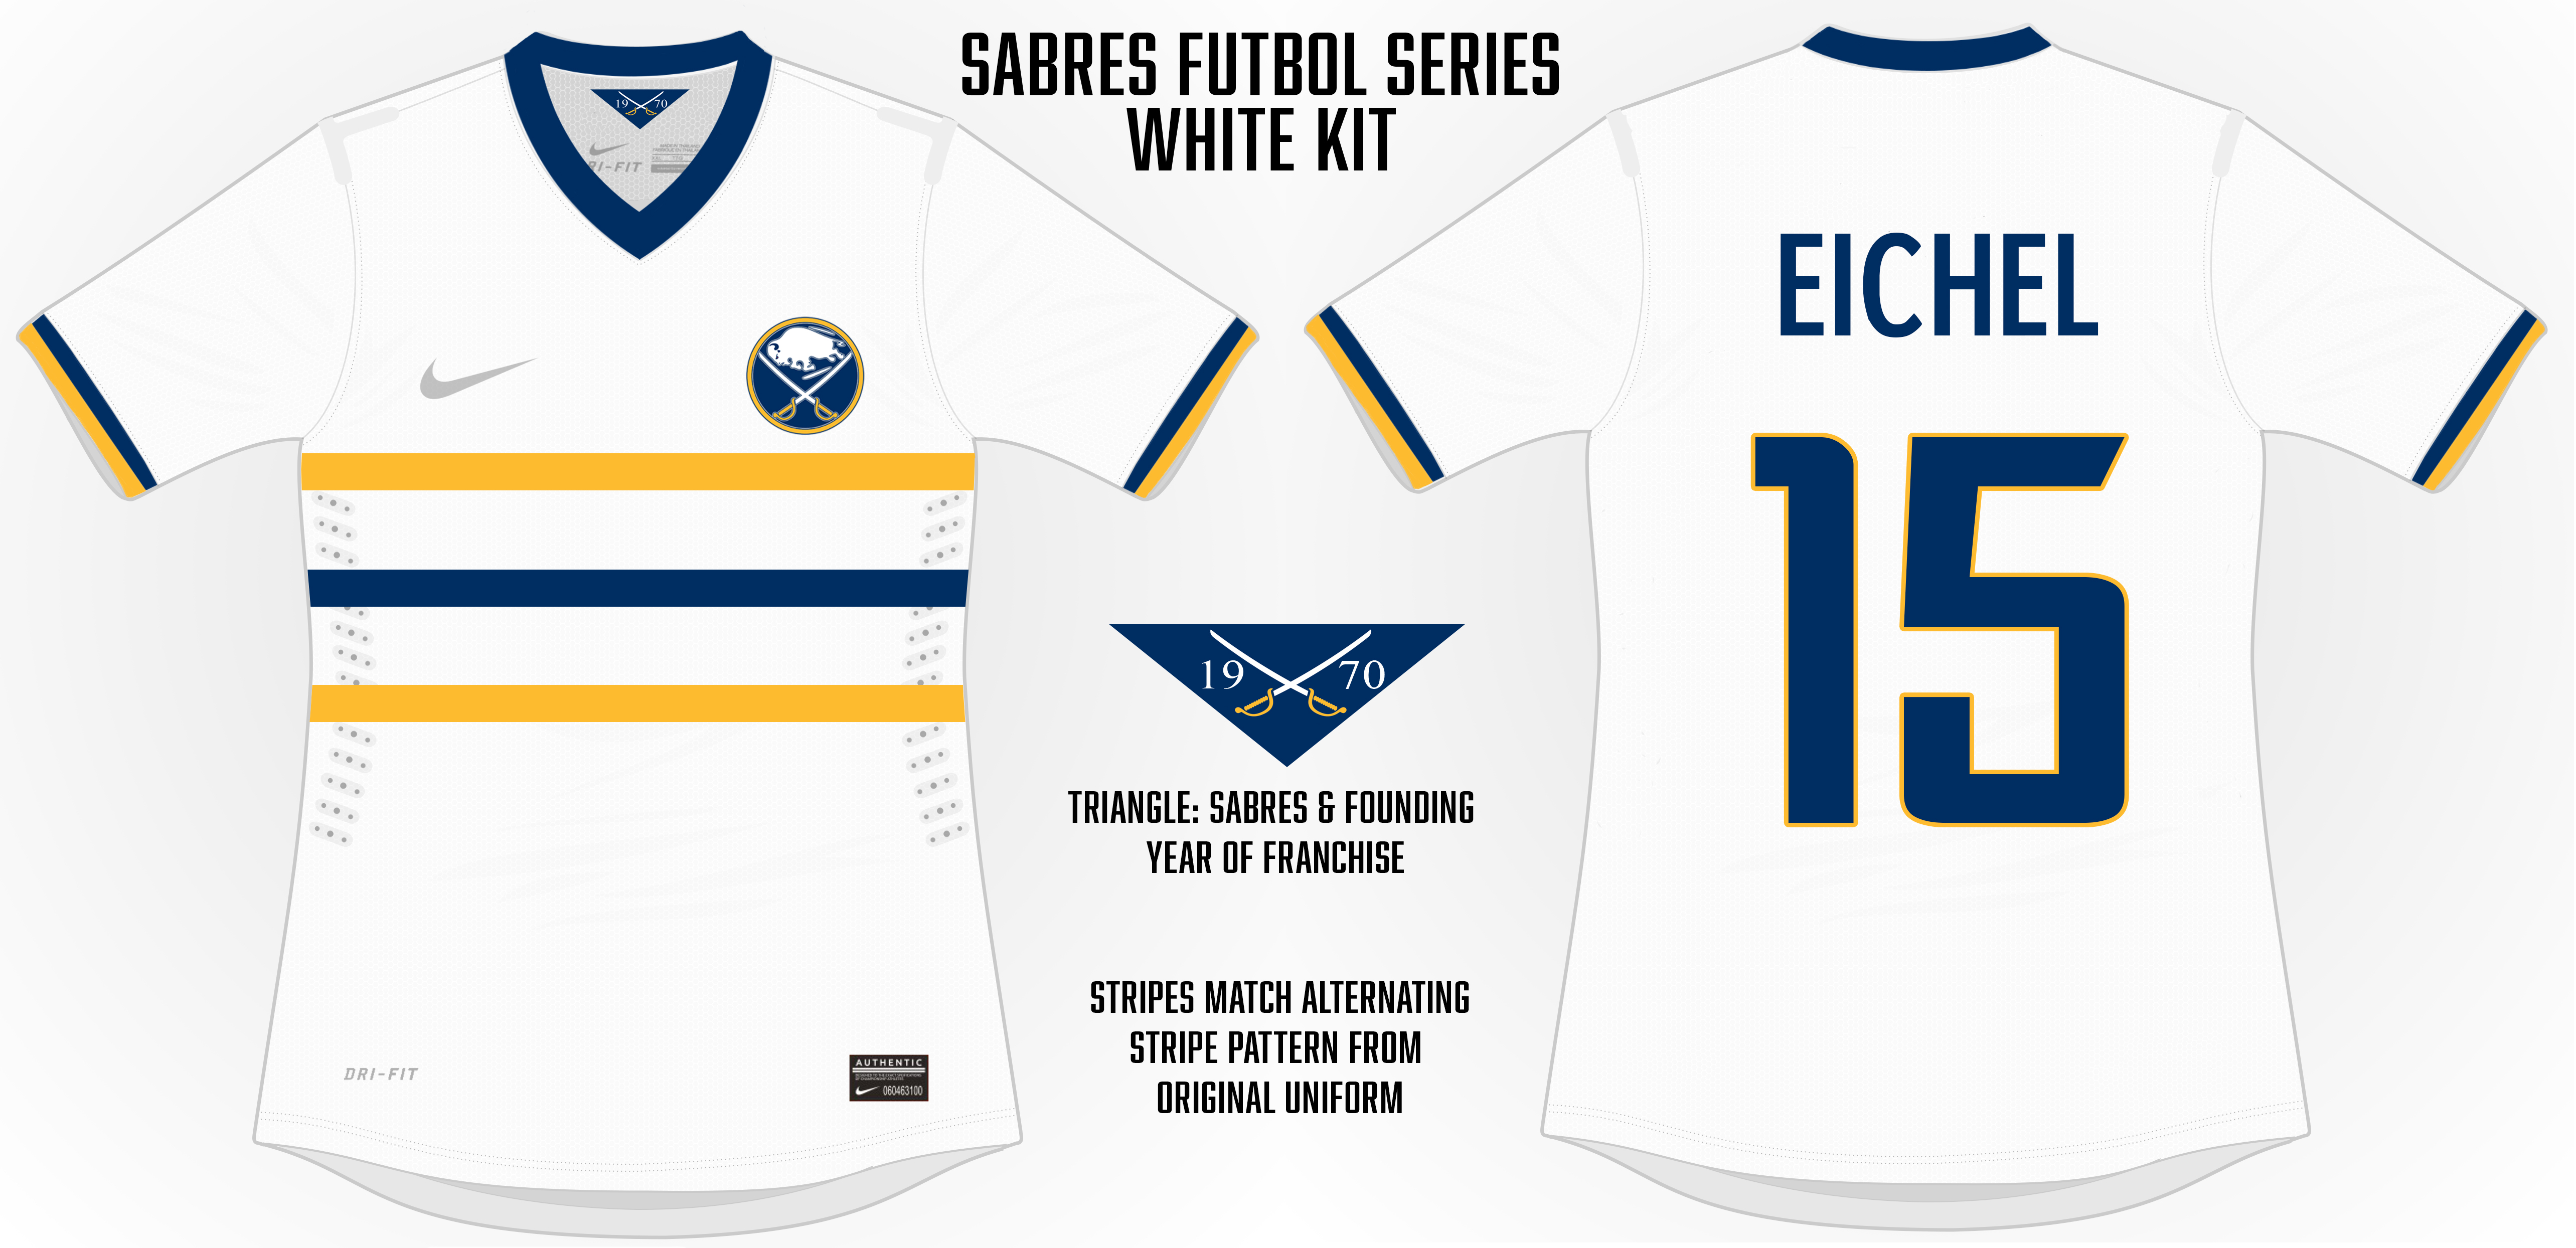 54f2f8a2f The Bills and Sabres Futbol Series Concepts – Two in the Box